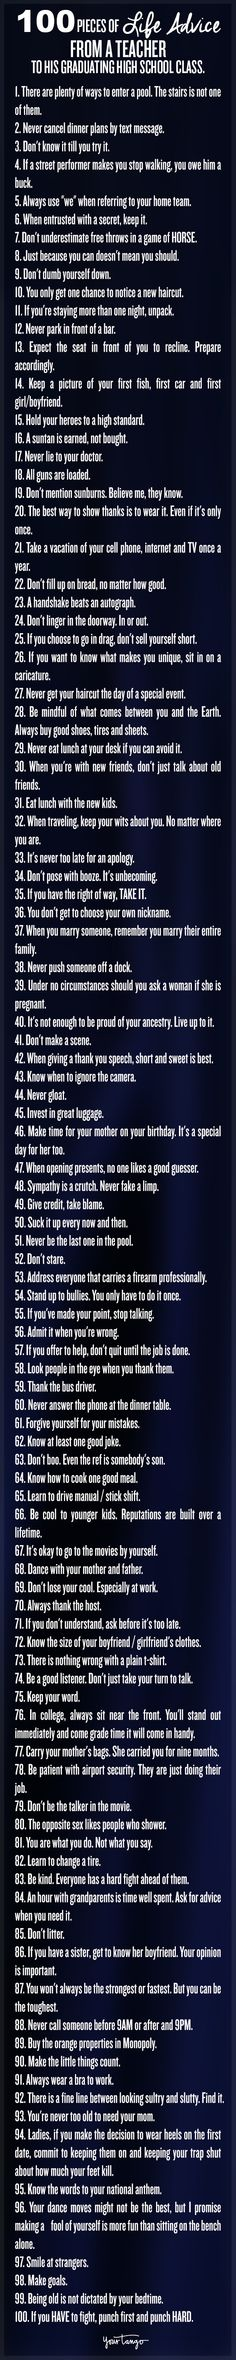 100 Pieces of Life Advice